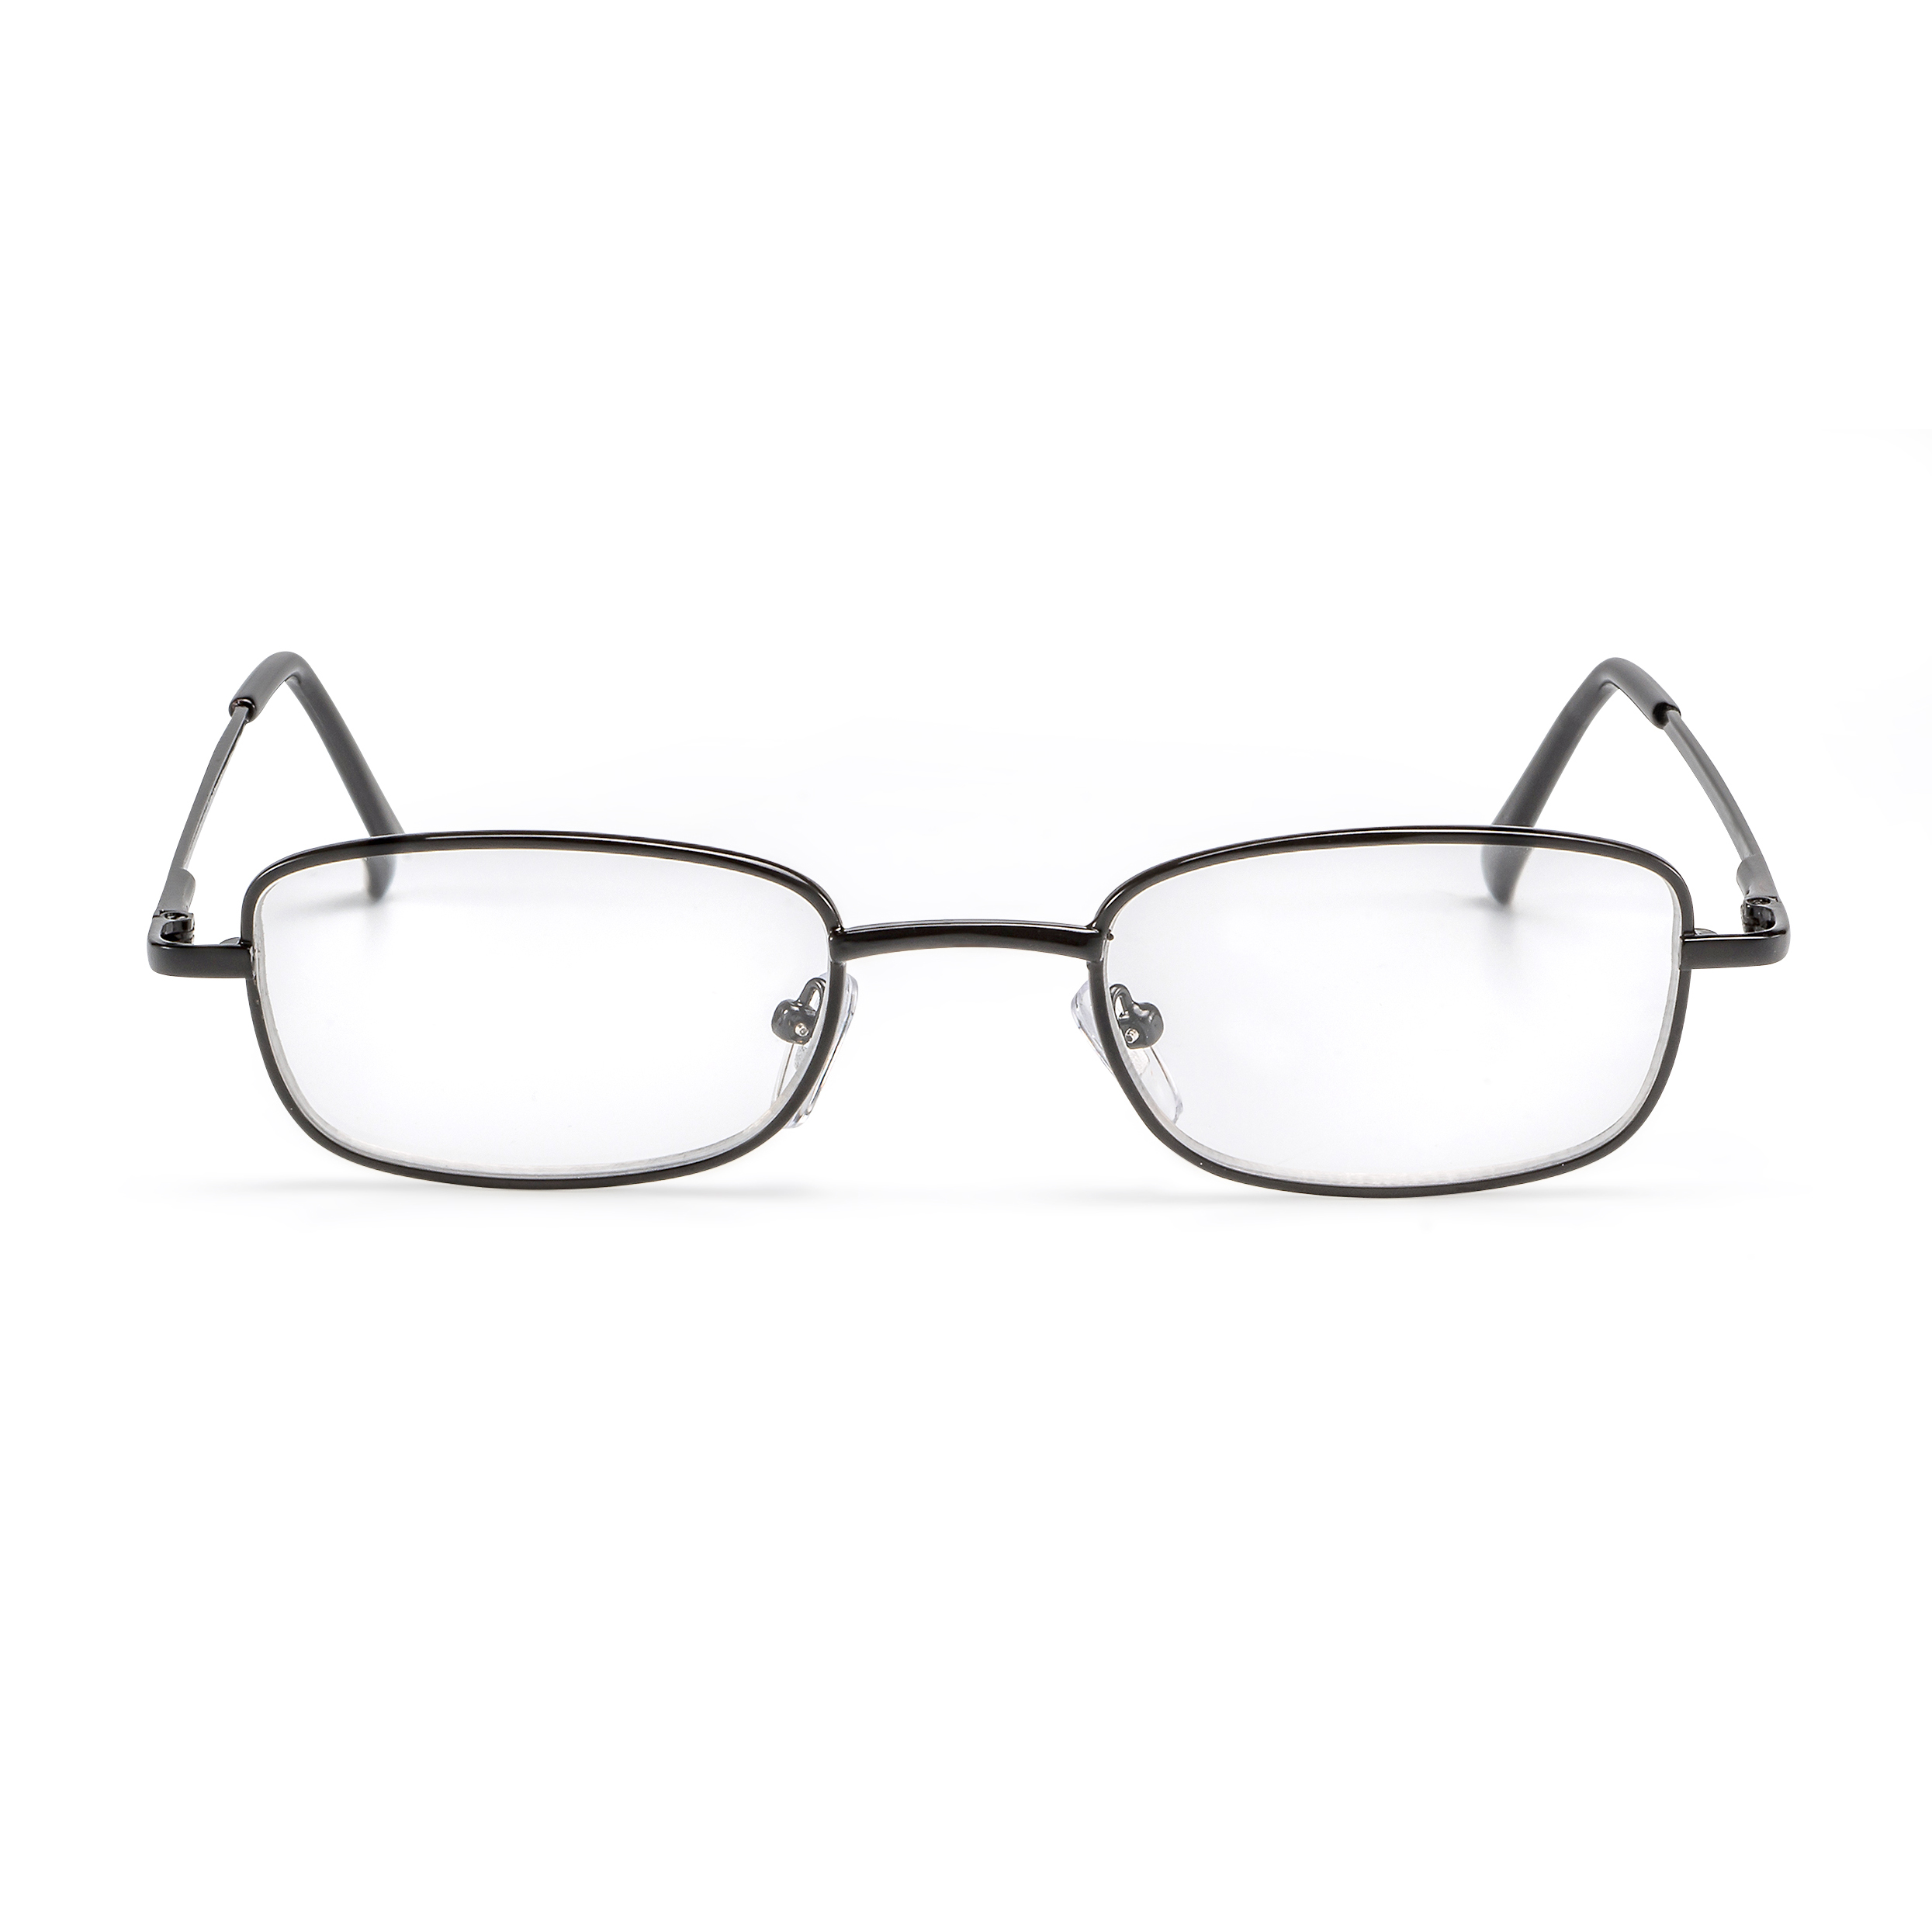 Front view reading glasses black